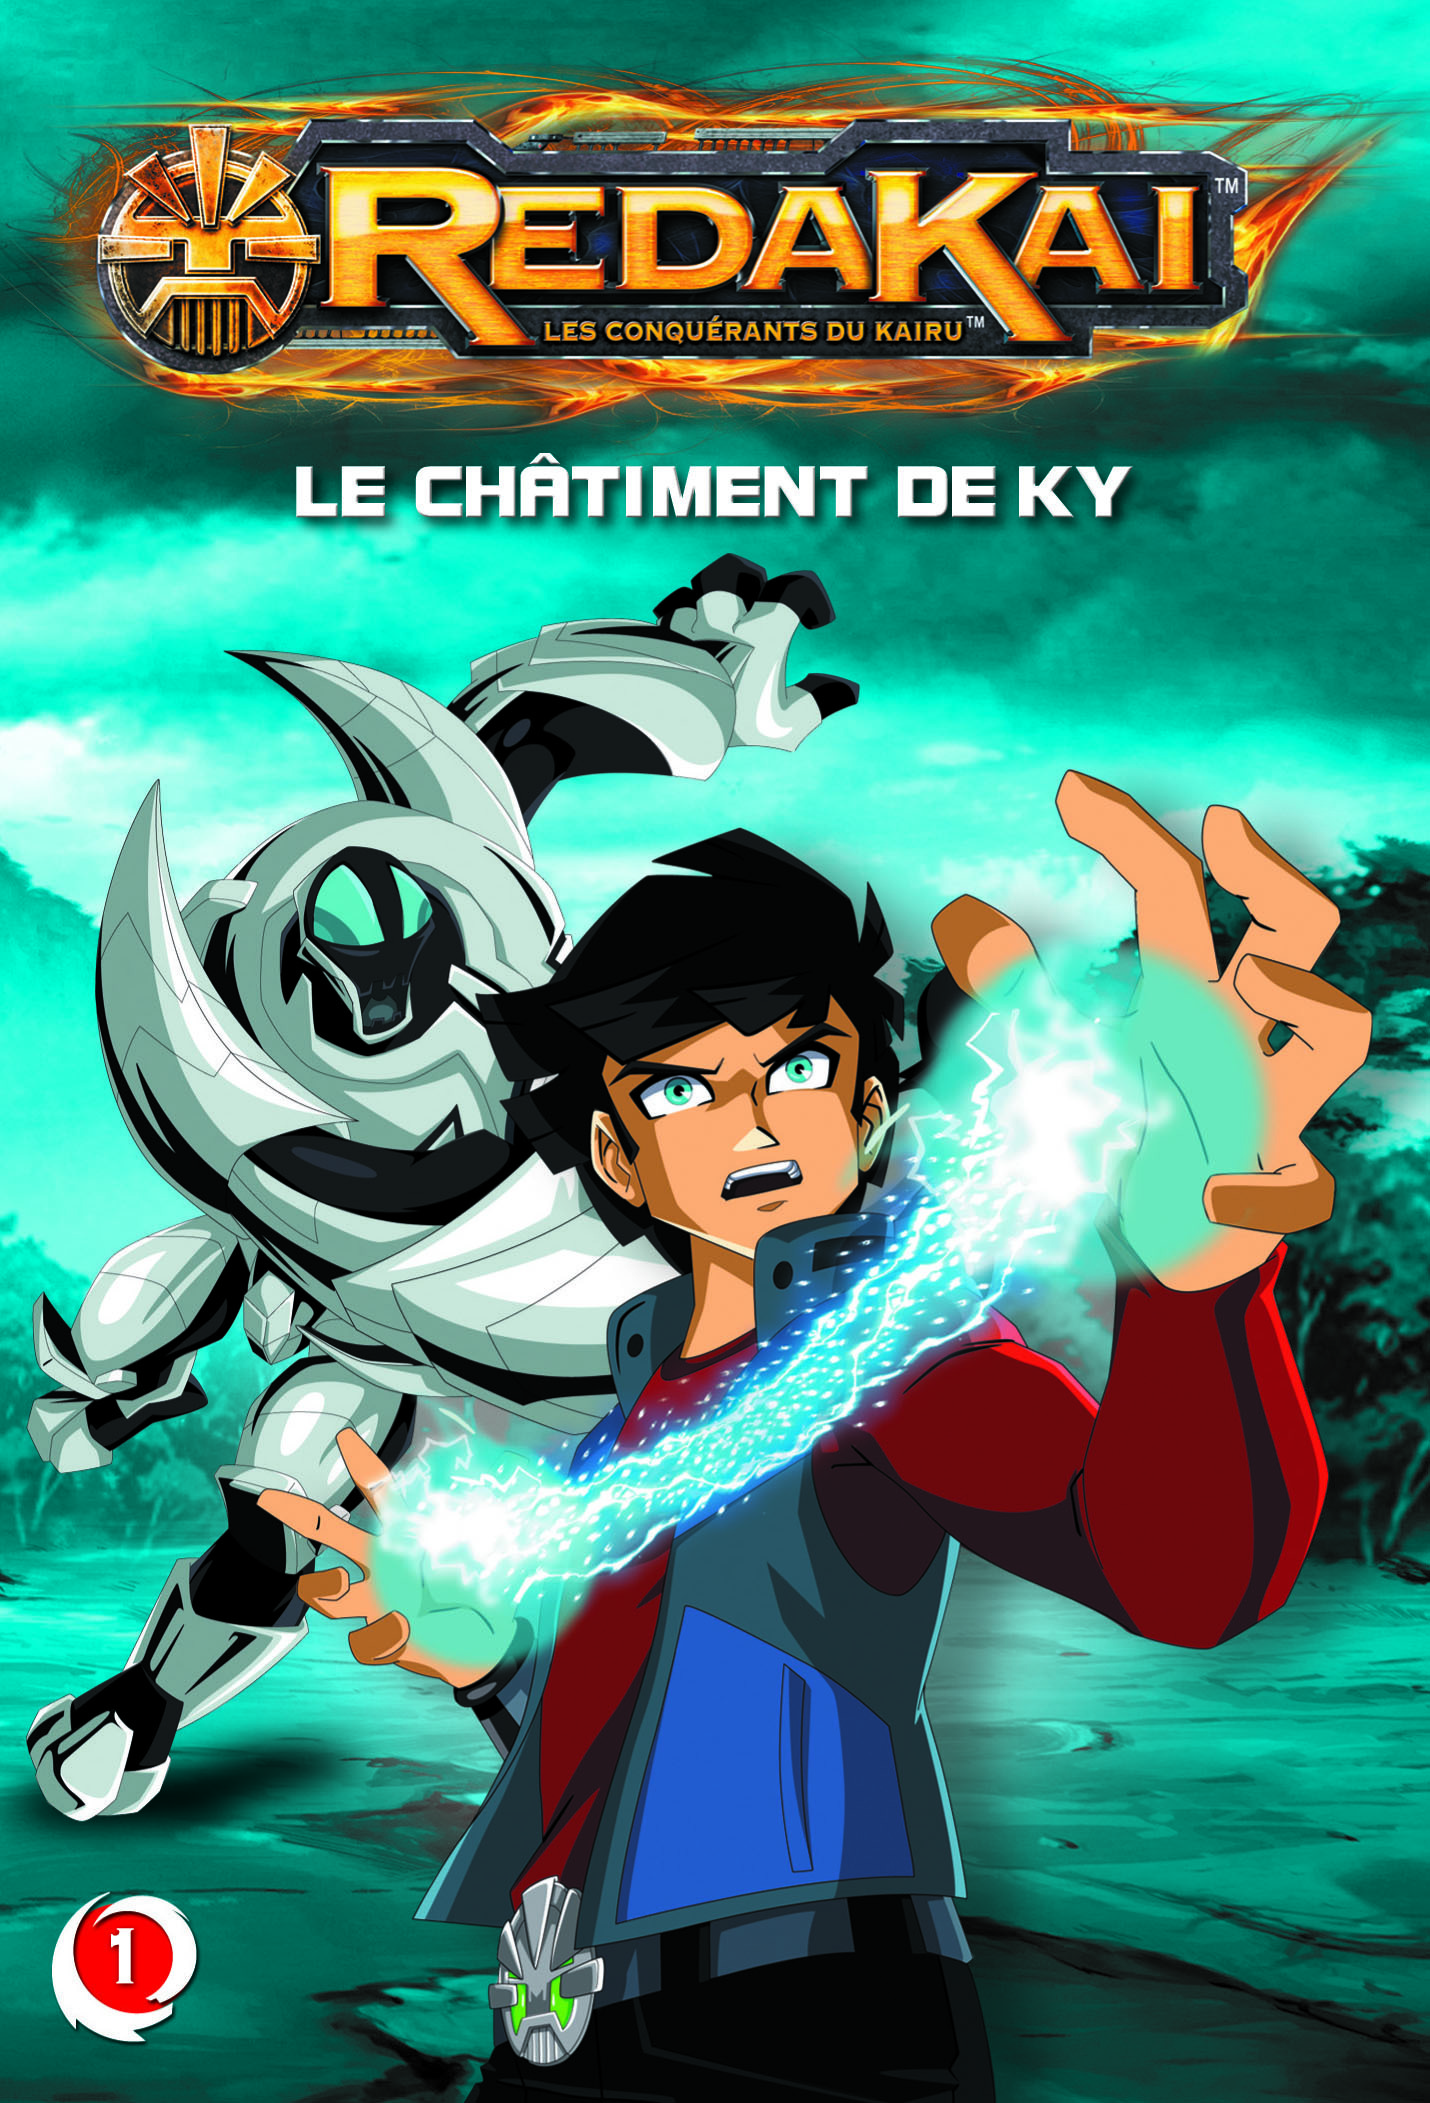 LE CHATIMENT DE KY